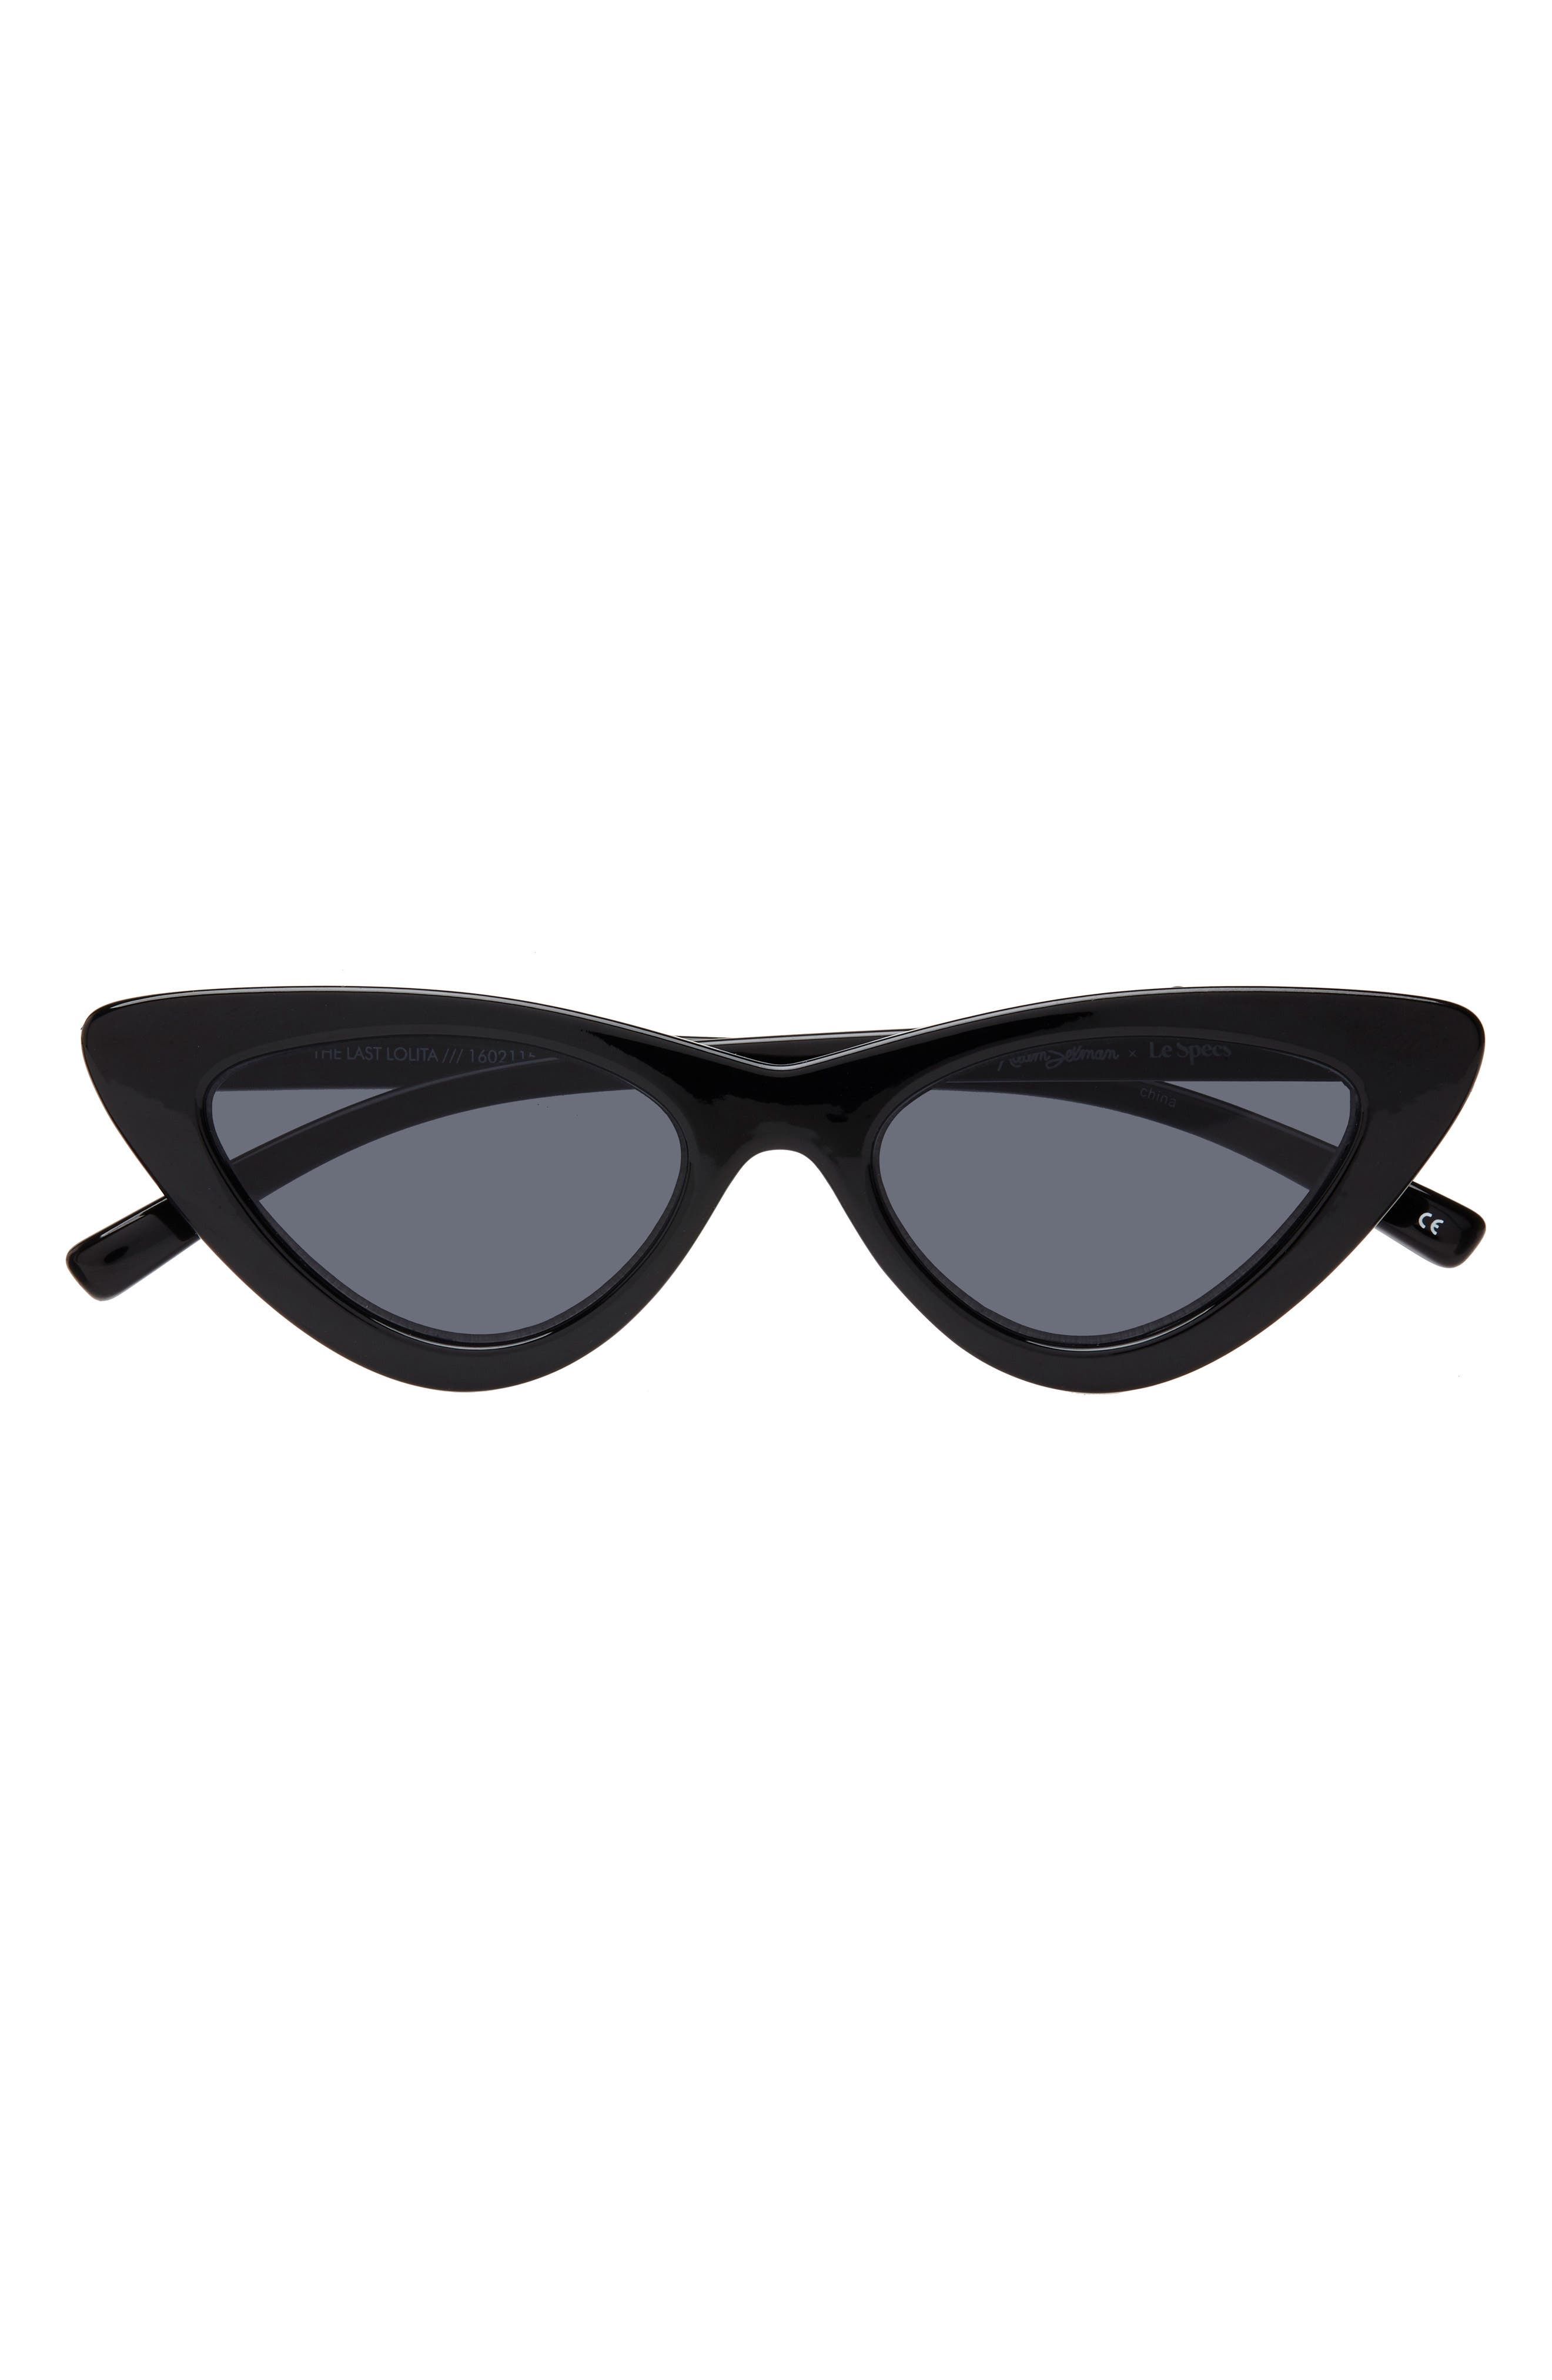 Lolita 49mm Cat Eye Sunglasses,                             Main thumbnail 1, color,                             BLACK